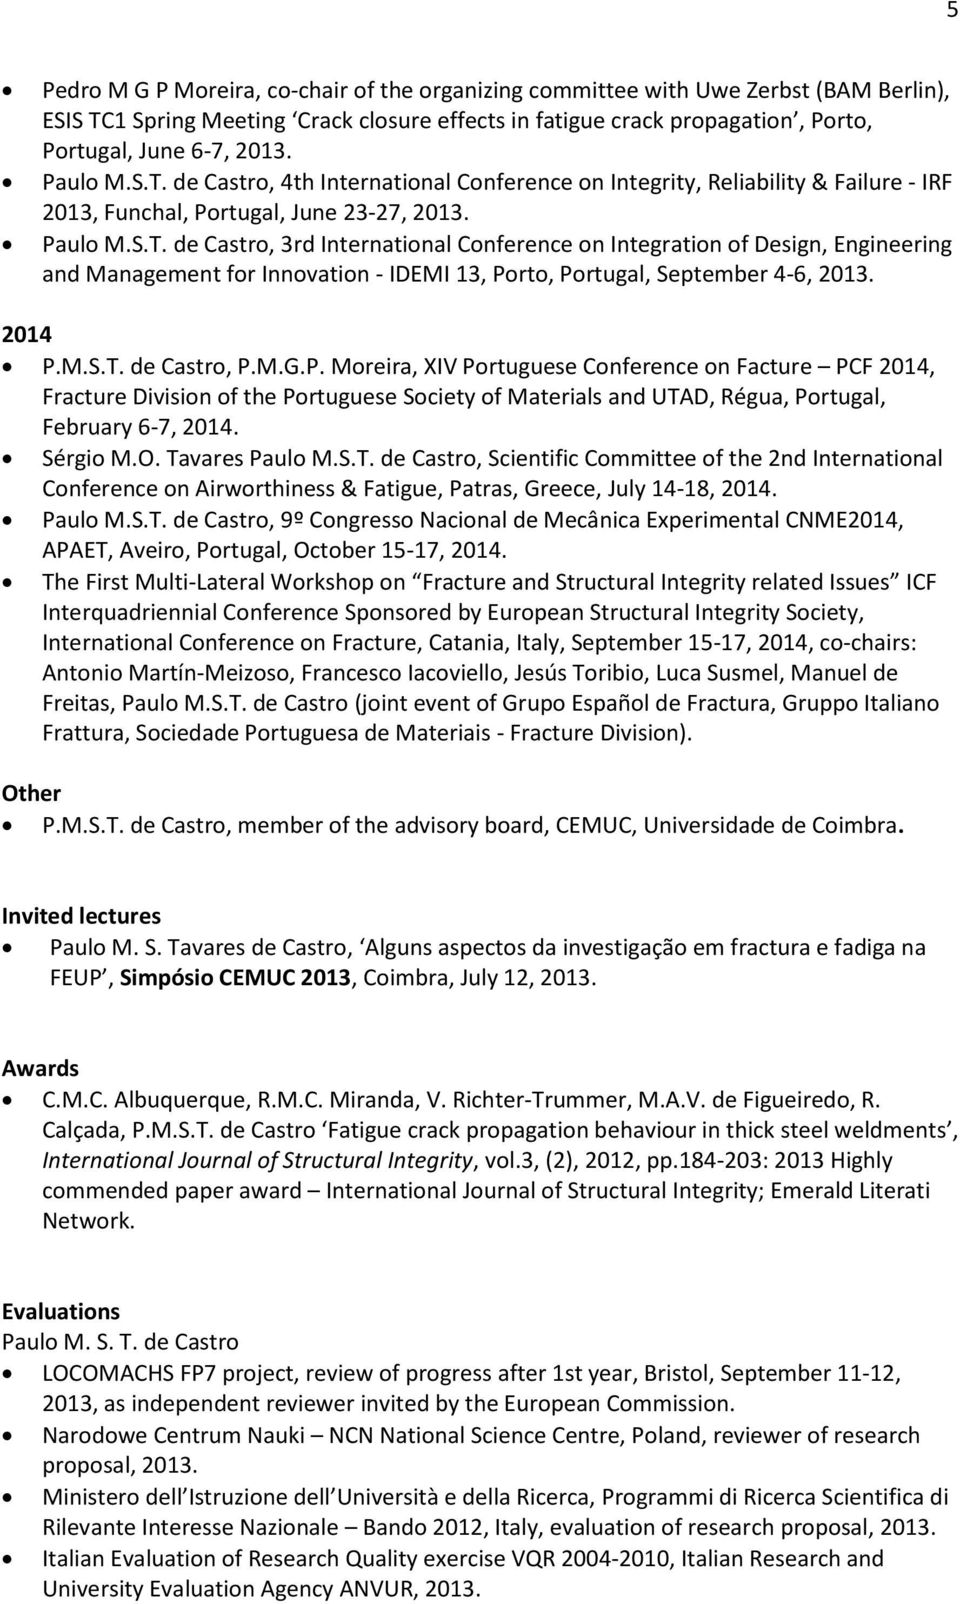 2014 P.M.S.T. de Castro, P.M.G.P. Moreira, XIV Portuguese Conference on Facture PCF 2014, Fracture Division of the Portuguese Society of Materials and UTAD, Régua, Portugal, February 6-7, 2014.